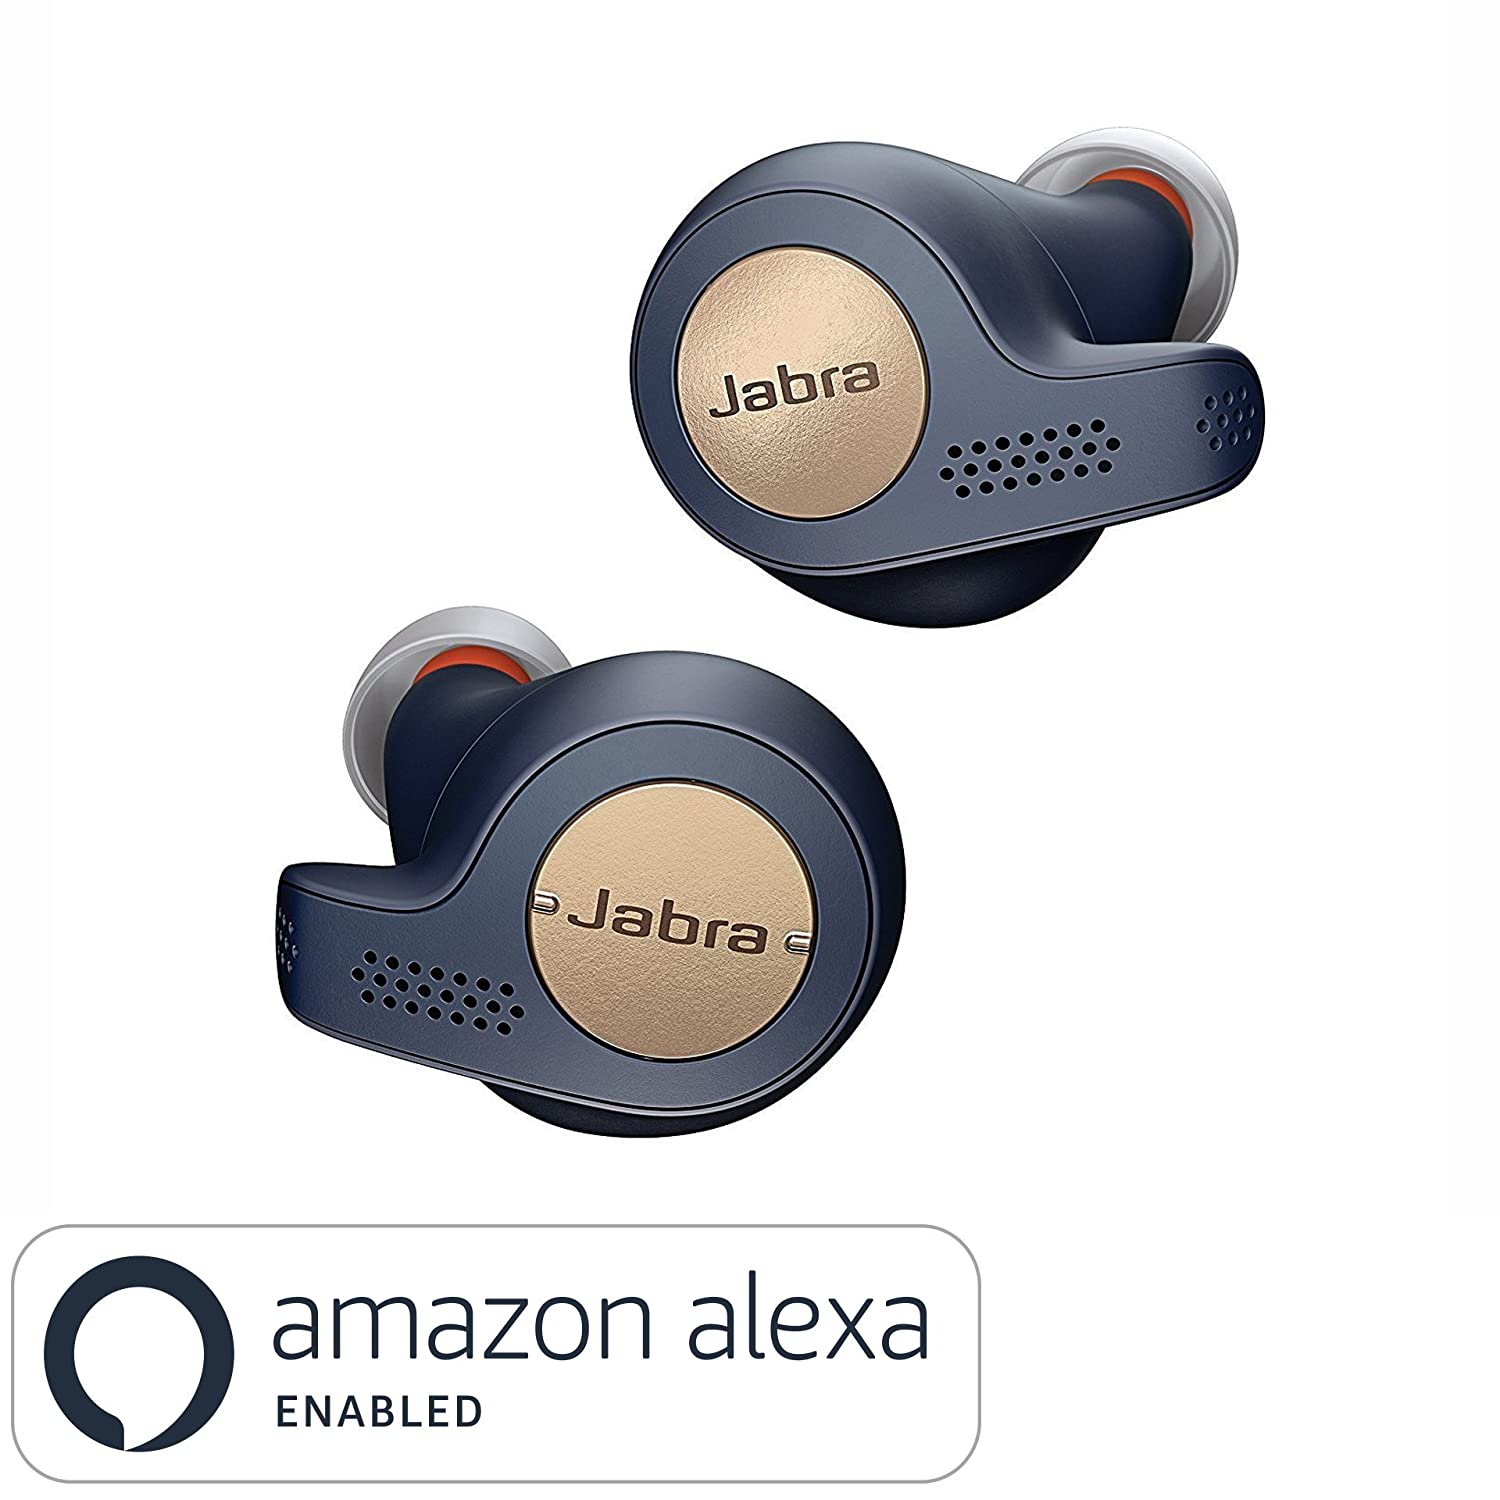 Jabra Elite Active 65t Alexa Enabled True Wireless Sports Earbuds with Charging Case - Copper Blue